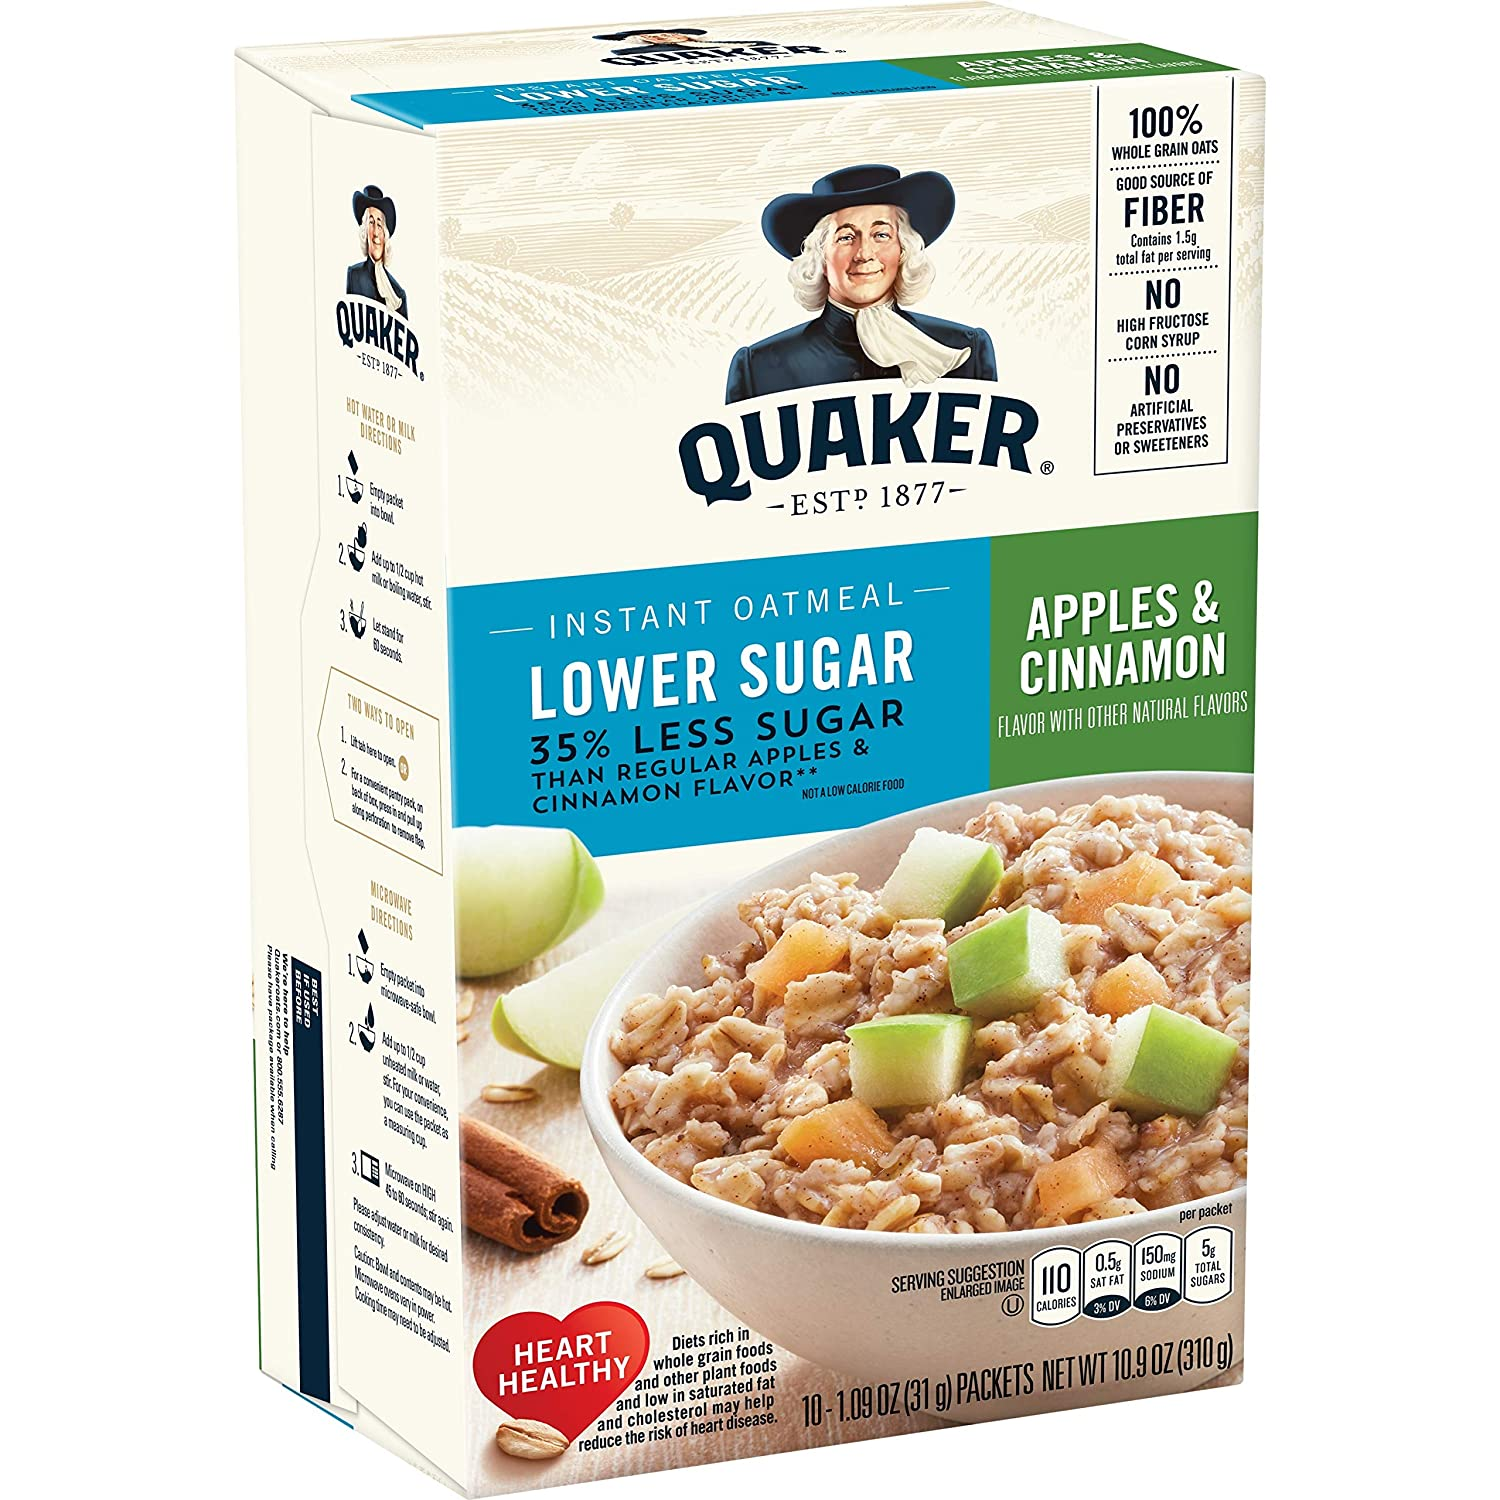 Quaker Instant Oatmeal, Lower Sugar, Apples & Cinnamon, Breakfast Cereal, 1.09 Ounce (Pack of 4)